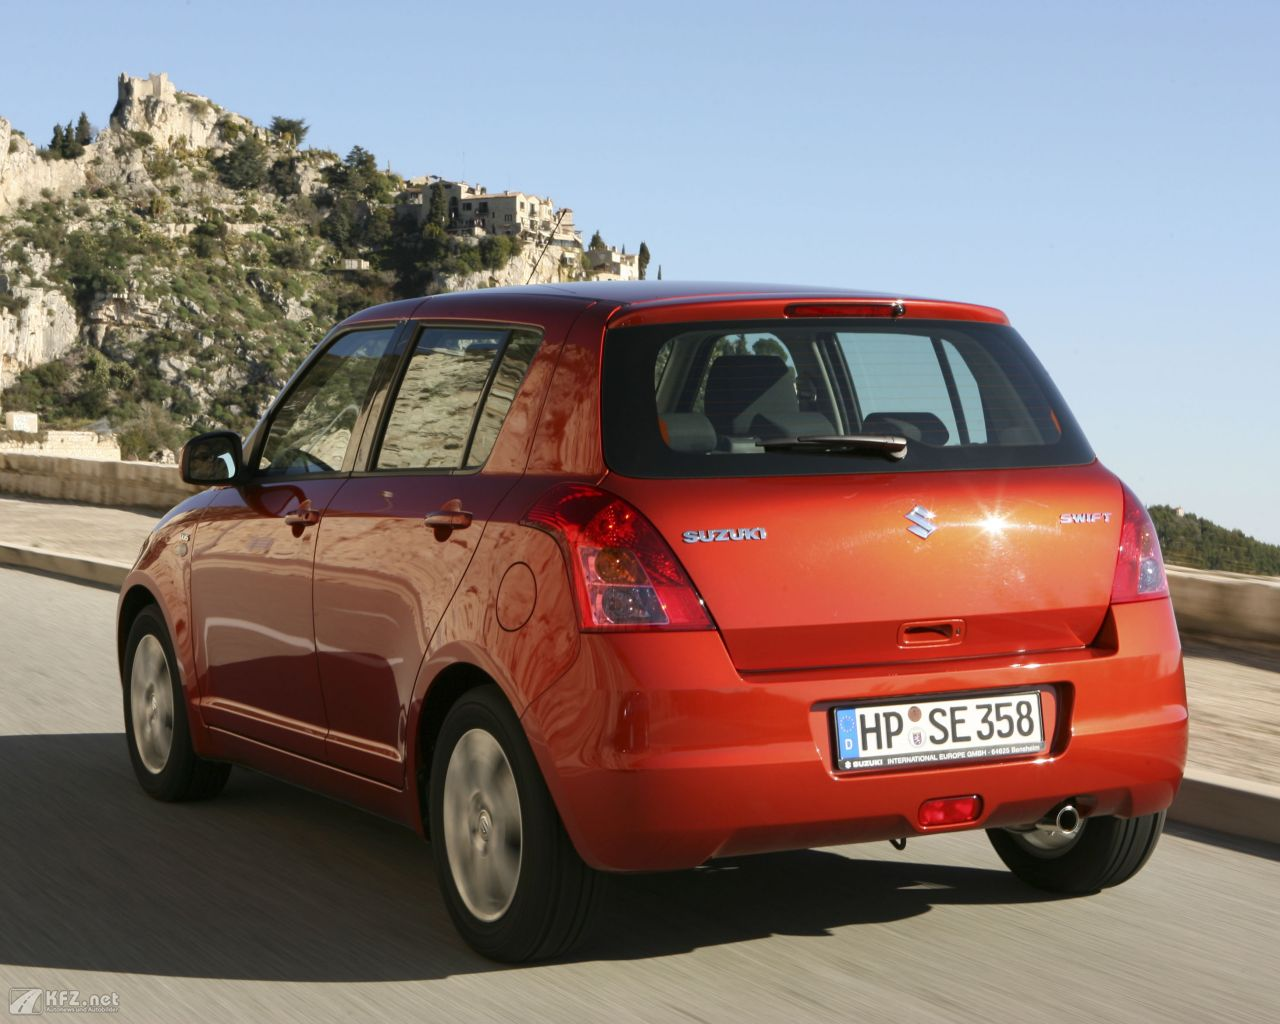 suzuki-swift-1280x1024-13